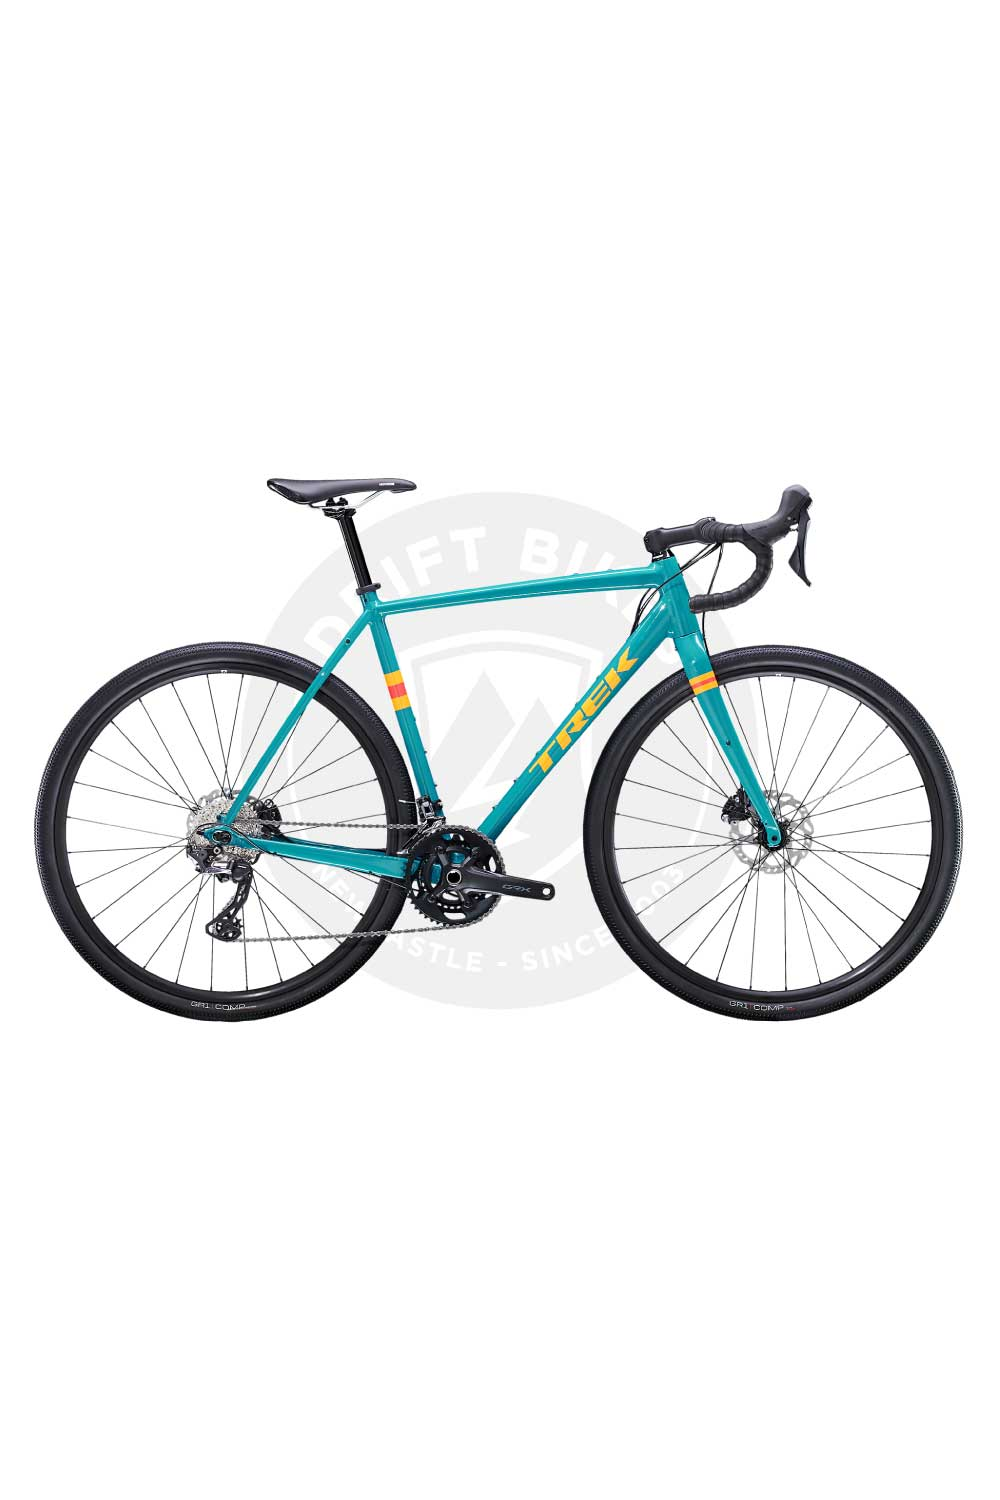 TREK 2021 Checkpoint ALR 5 Road Adventure Bike